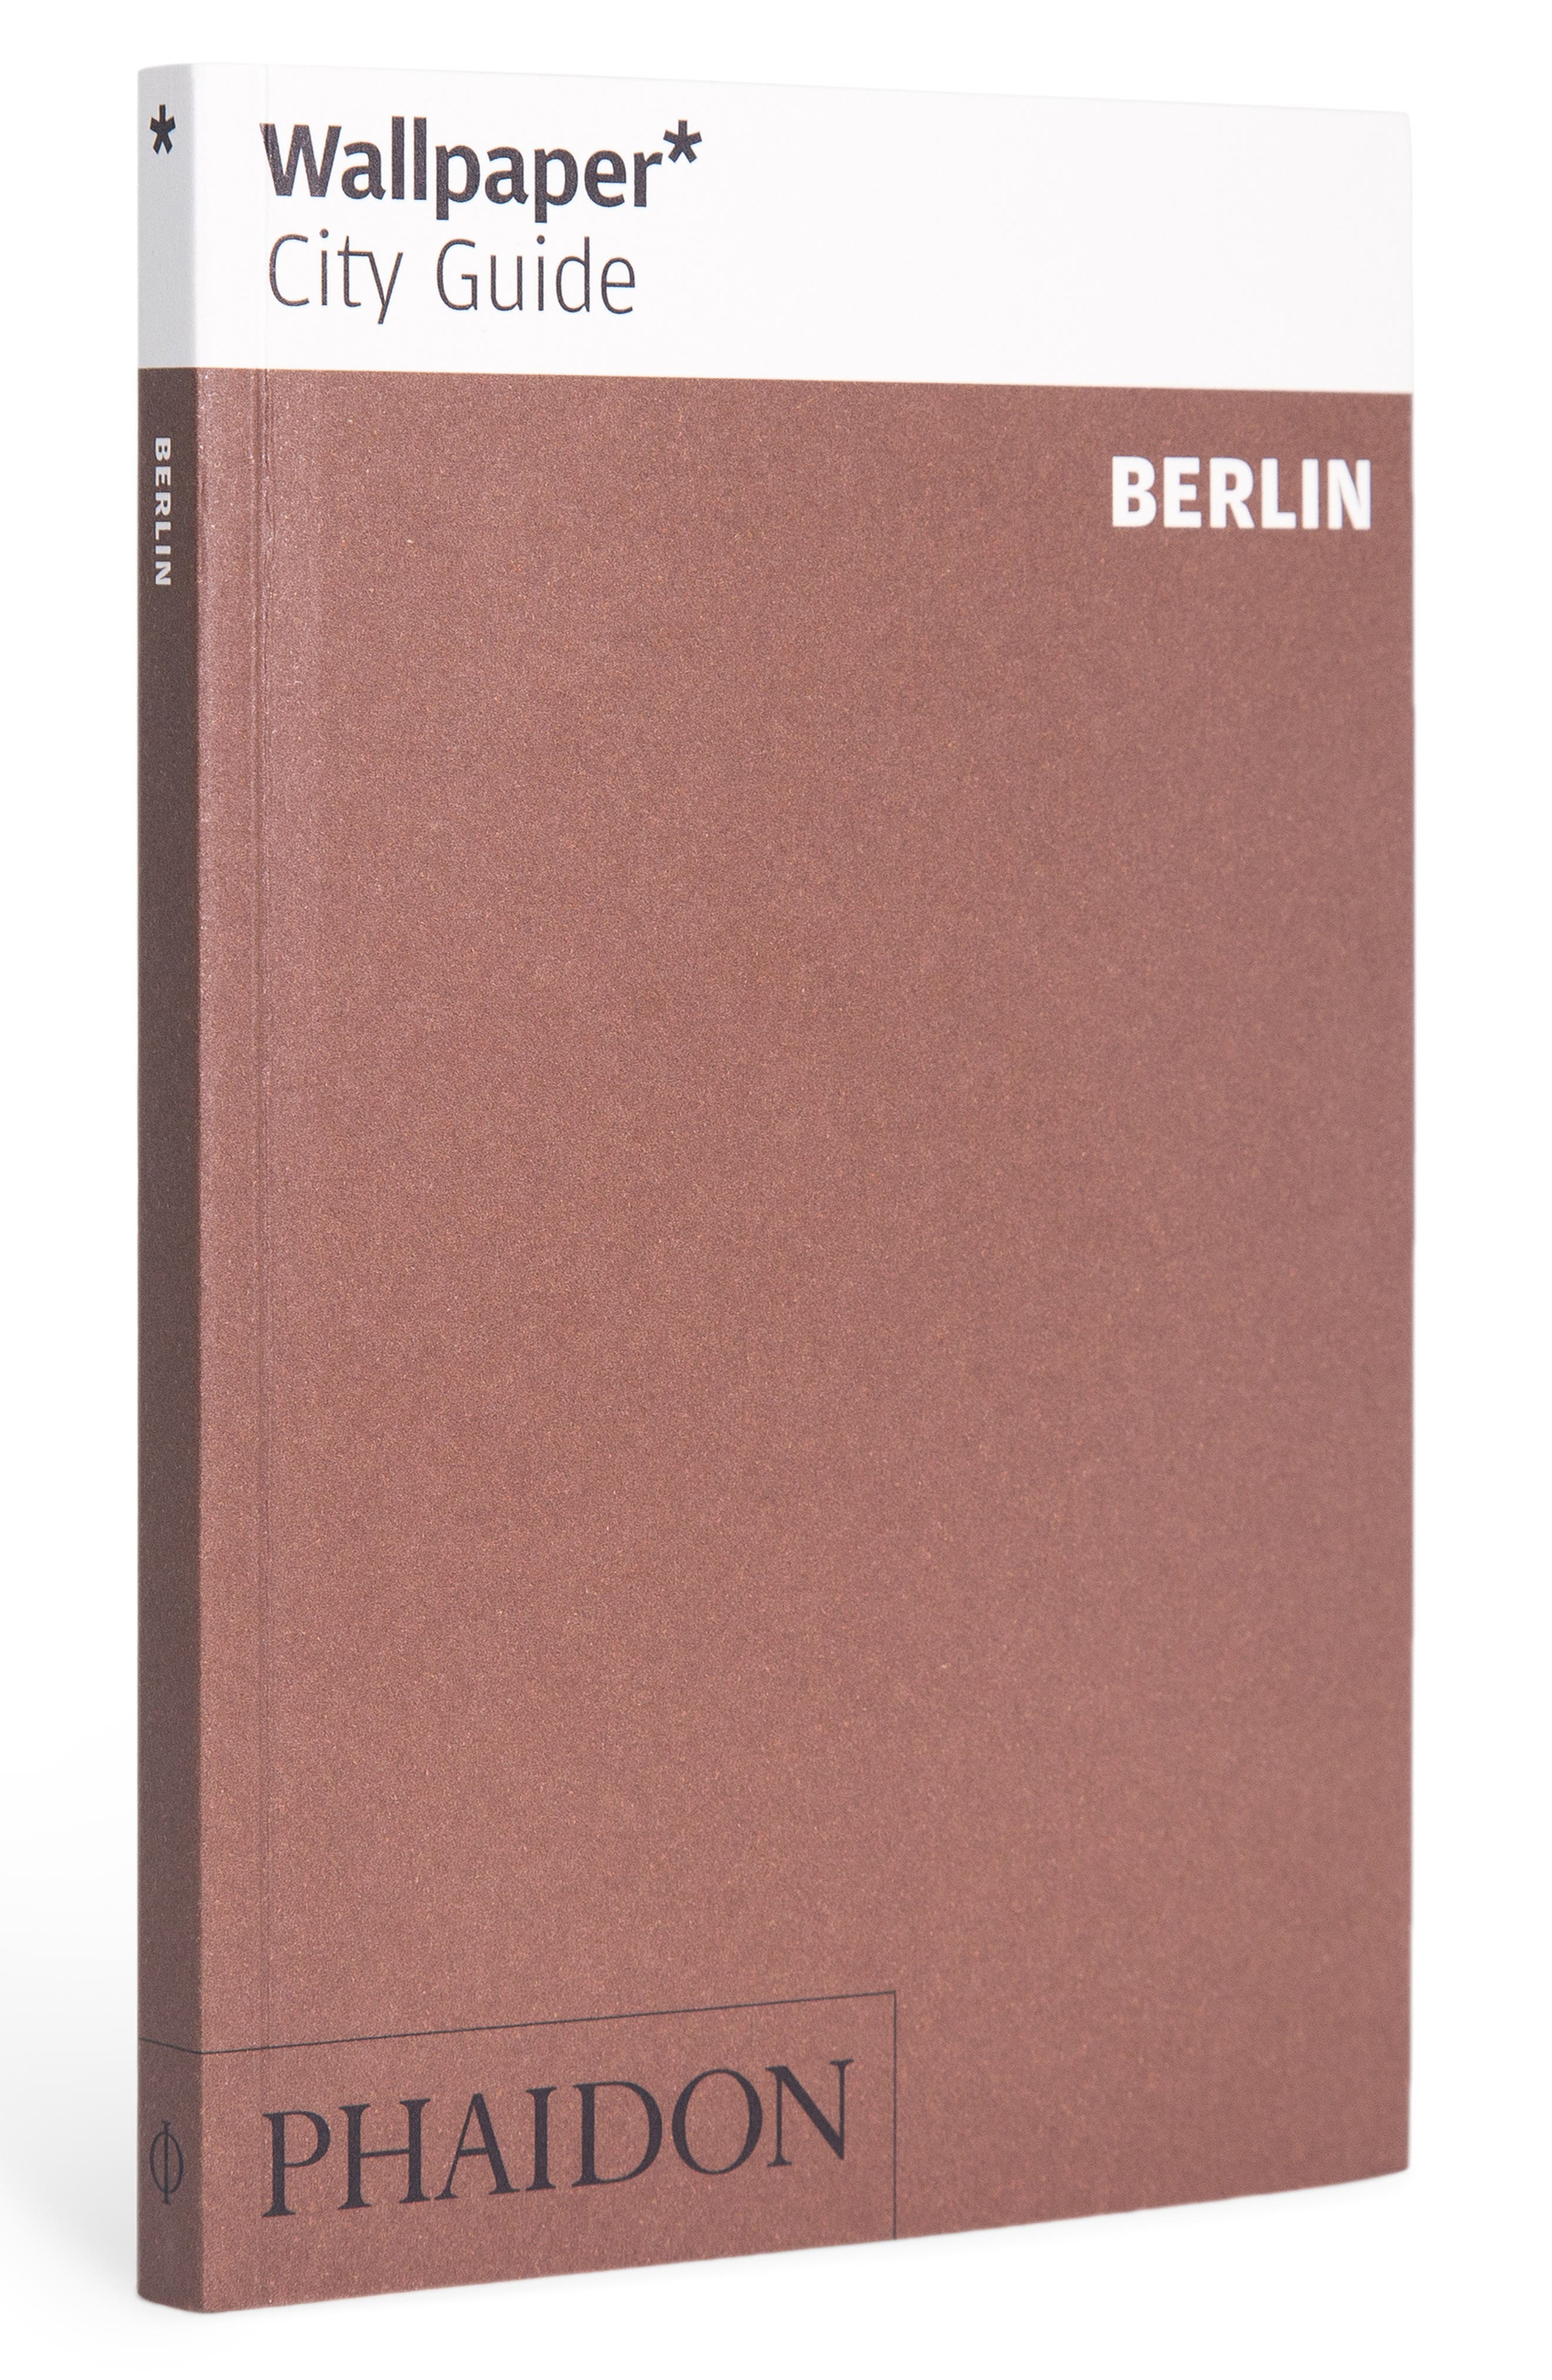 ISBN 9780714875330 product image for 'Wallpaper* City Guide Berlin' Pocket Size Travel Book, Size One Size - Brown | upcitemdb.com